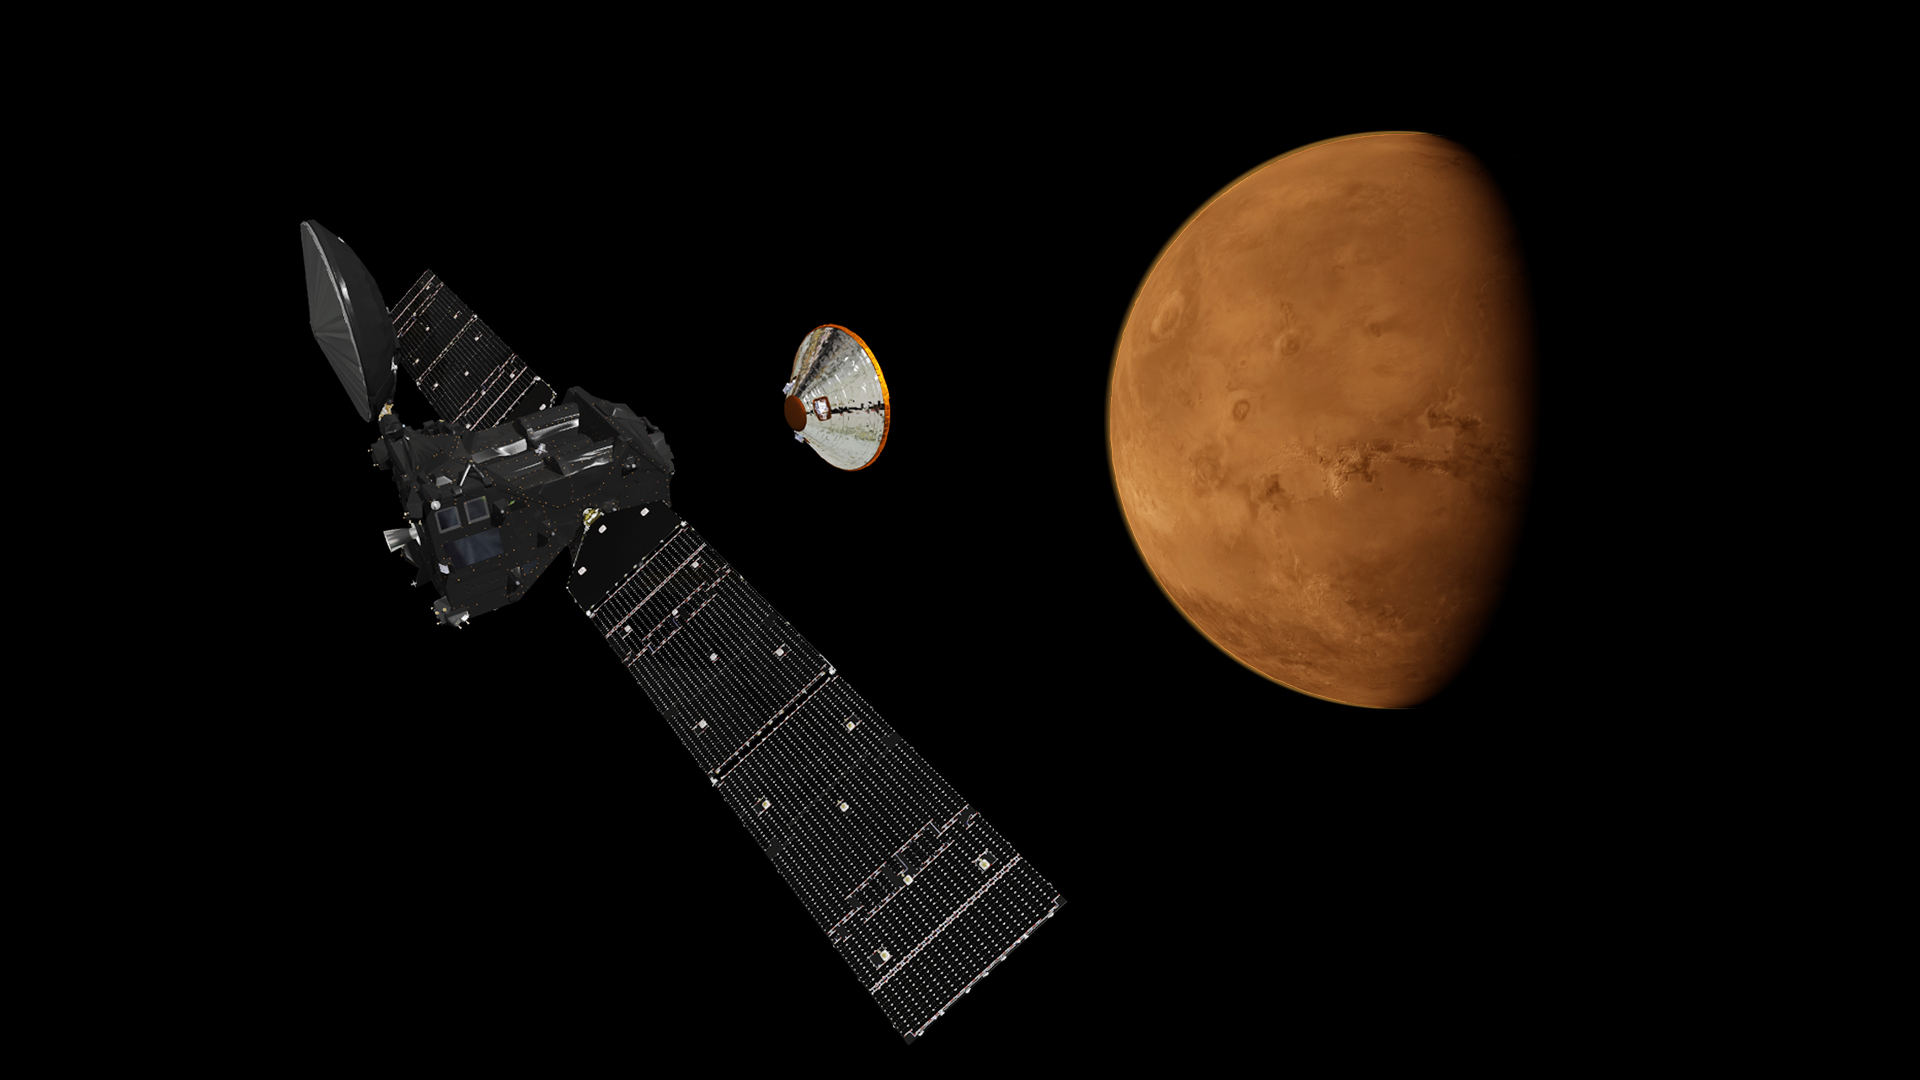 Artist's impression Europe's ExoMars 2016 Trace Gas Orbiter and Schiaparelli